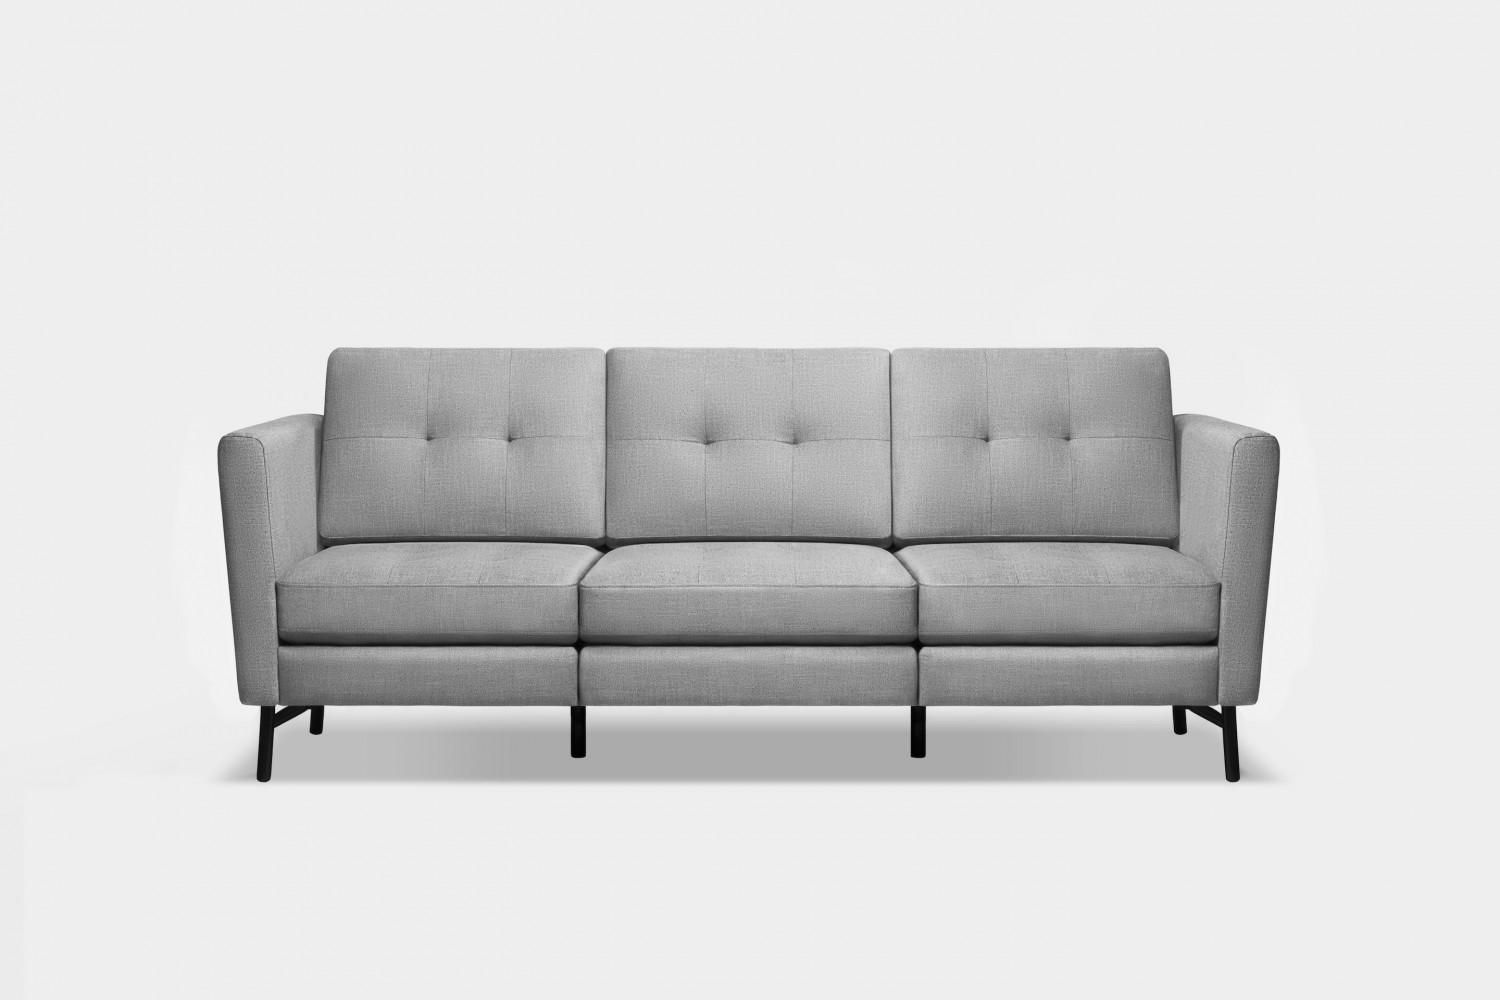 Founded By A Pair Of Wharton Grads, This Brand Asserts That It Has  Reinvented The Luxury Couch. According To The Companyu0027s Website, Theyu0027ve  Managed To ...